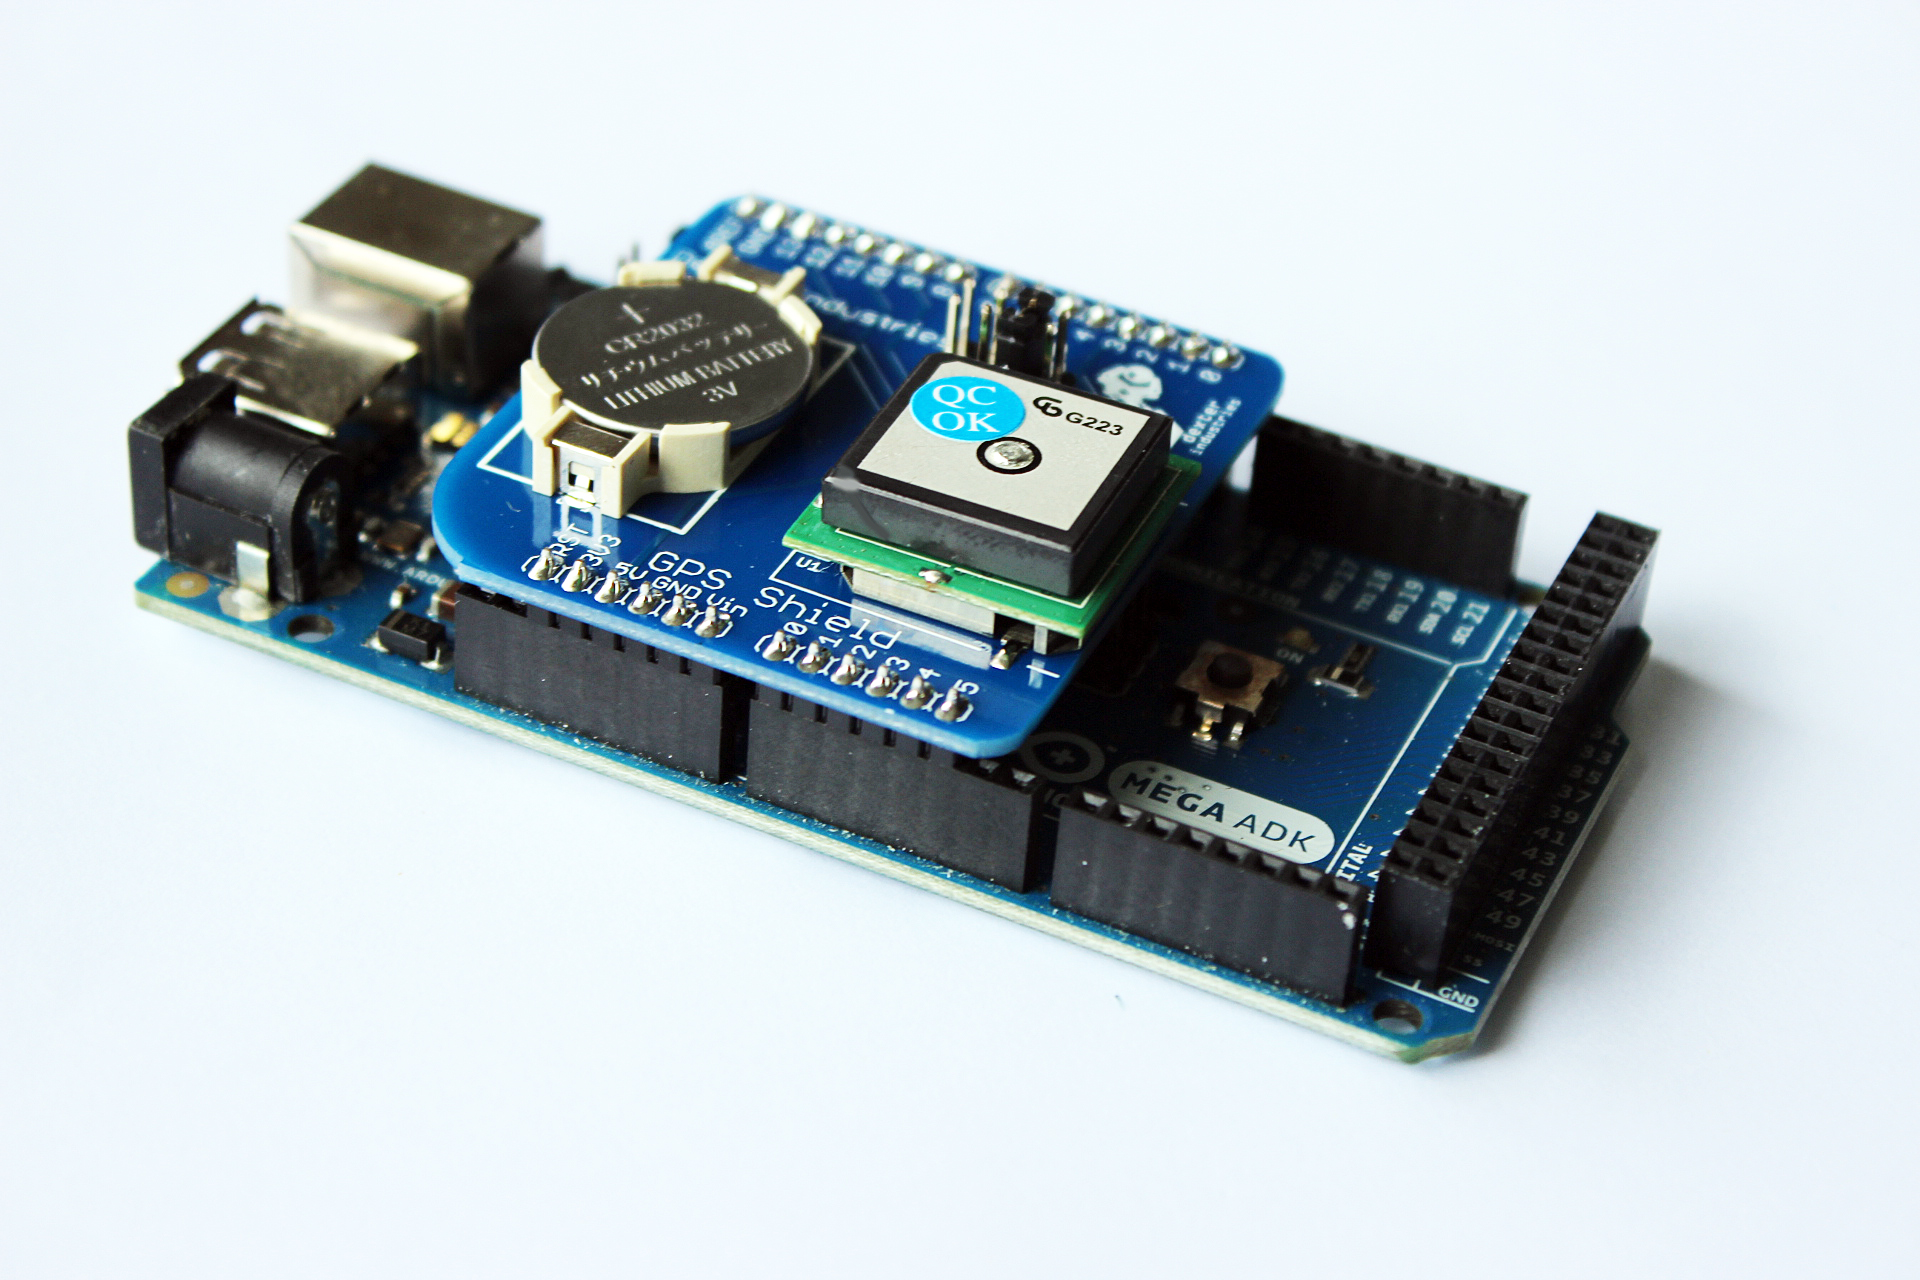 Gps shield for arduino by dexter industries